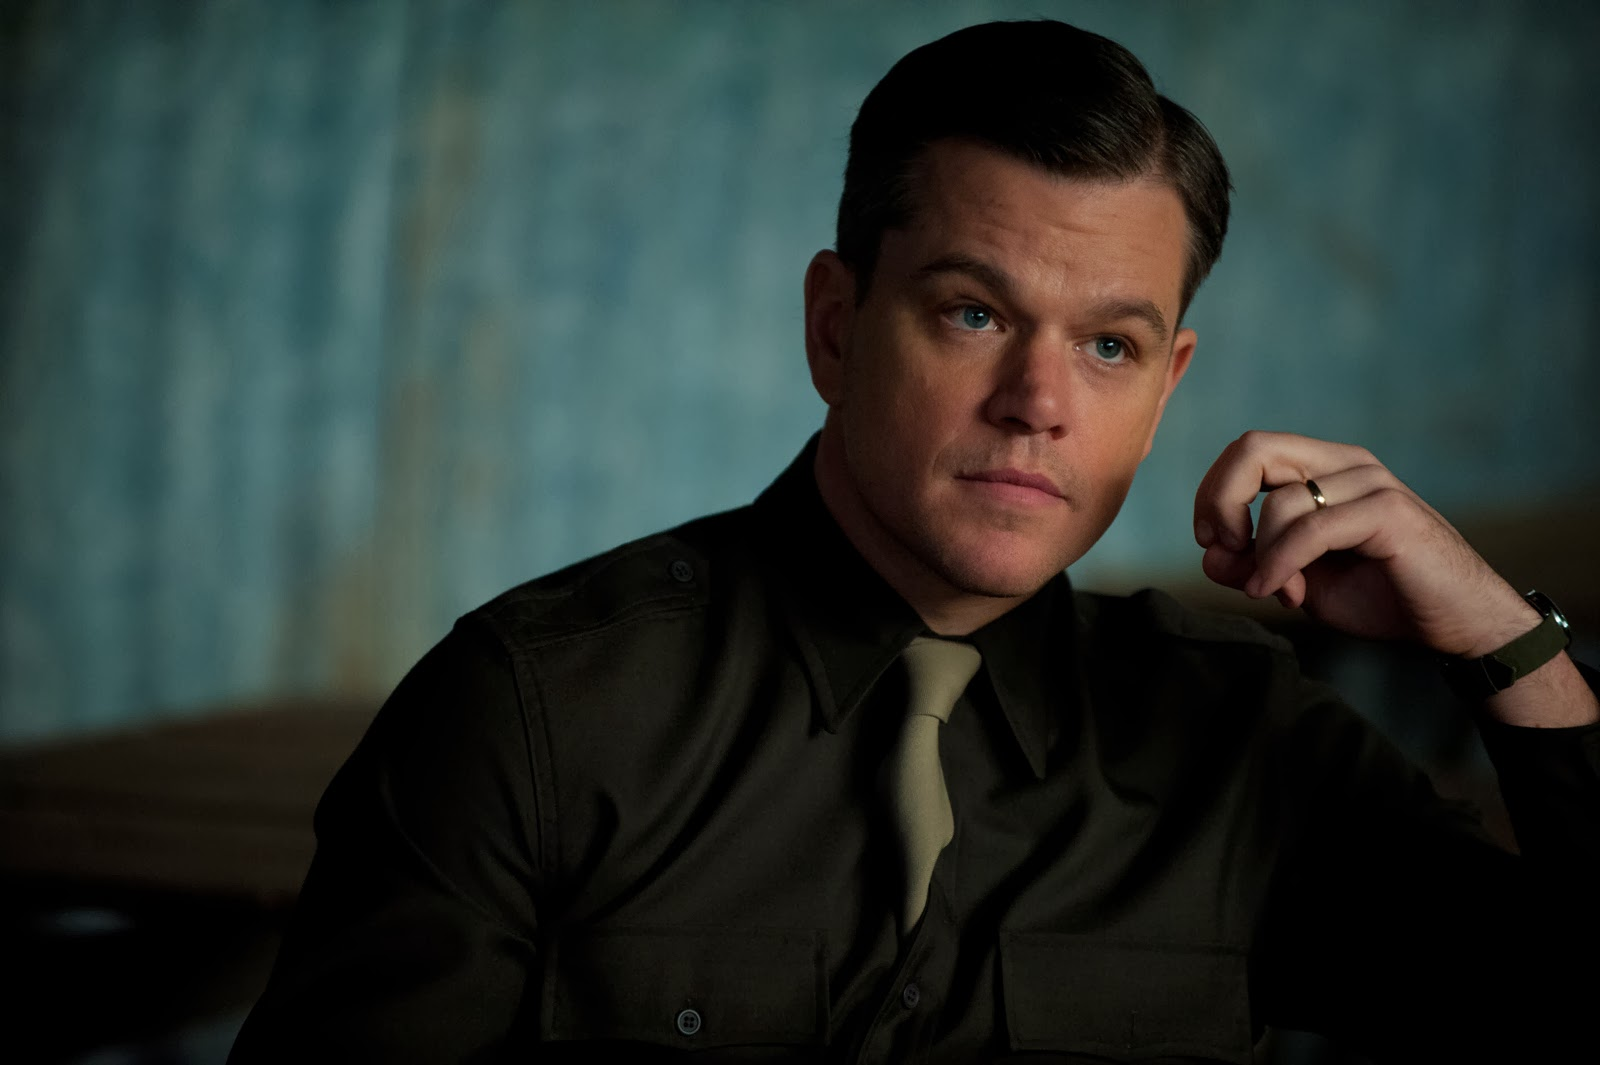 lakwatsera lovers matt damon on the monuments men and how it felt like it 39 s an oceans movie. Black Bedroom Furniture Sets. Home Design Ideas